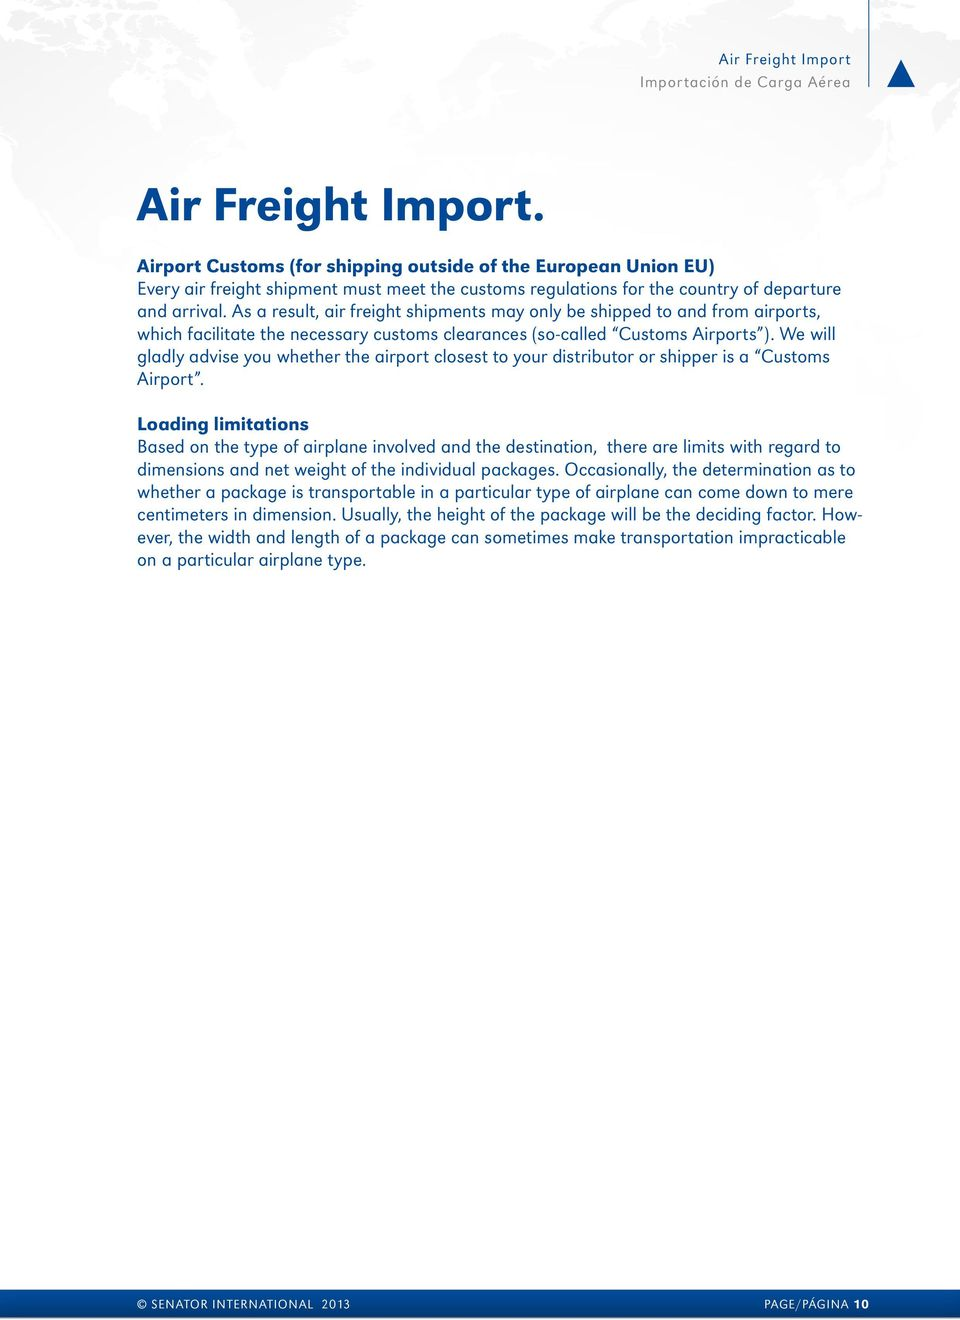 As a result, air freight shipments may only be shipped to and from airports, which facilitate the necessary customs clearances (so-called Customs Airports ).